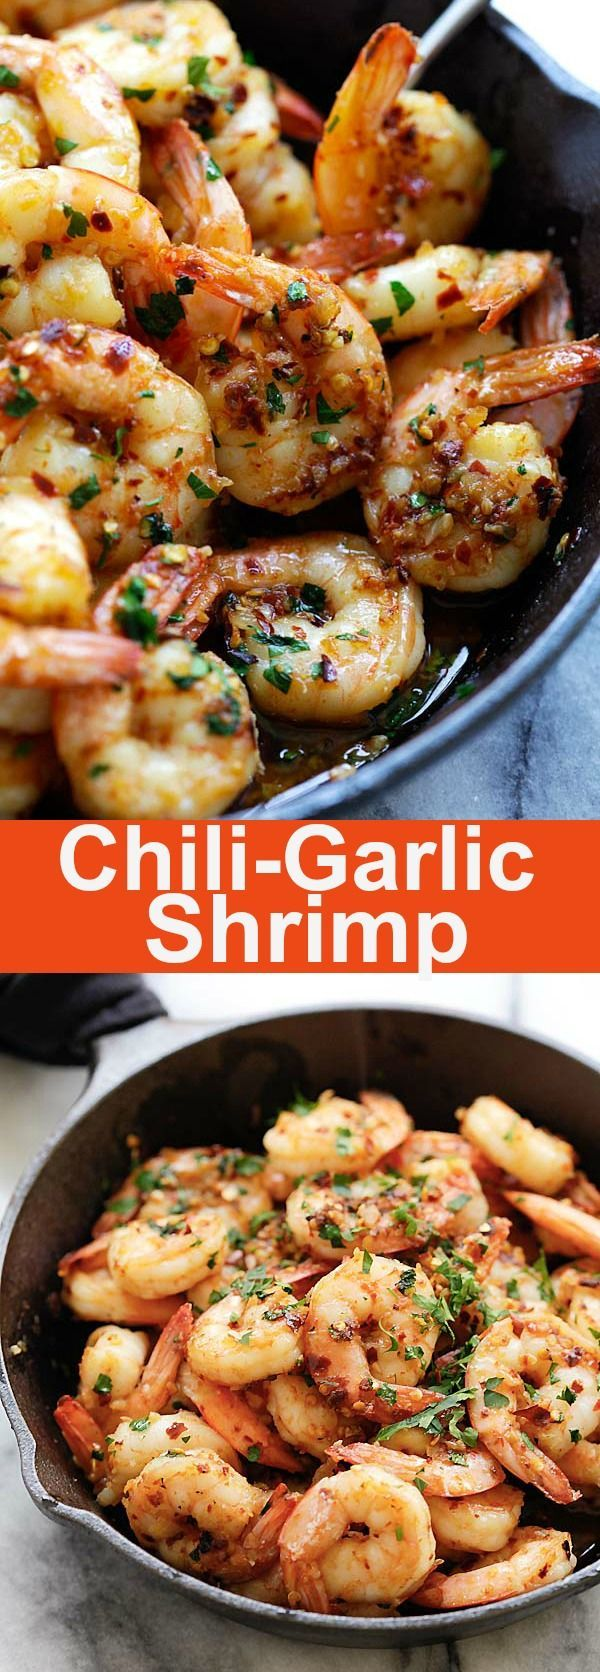 Chili Garlic Shrimp (Gambas Al Ajillo) – the best shrimp appetizer recipe you'll make. This Spanish chili garlic shrimp recipe is the bomb | rasamalaysia.com #seafoodrecipes